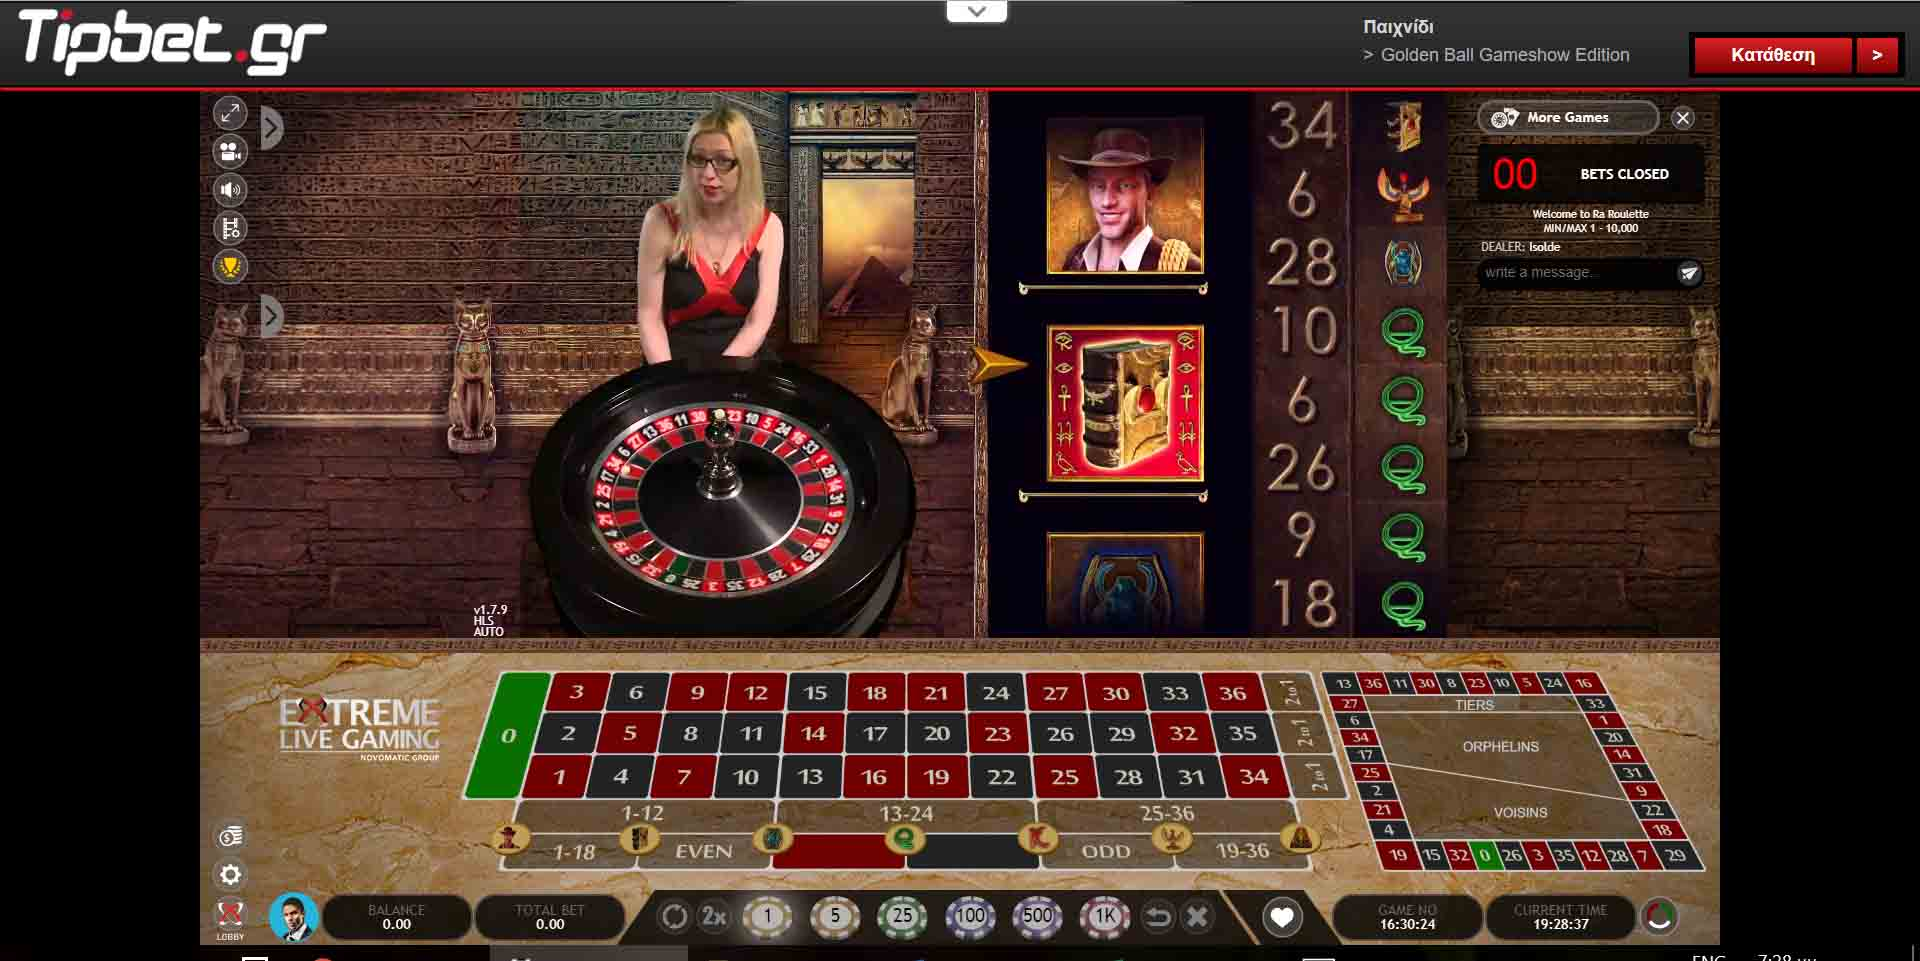 tipbet live casino extreme live gaming ra roulette